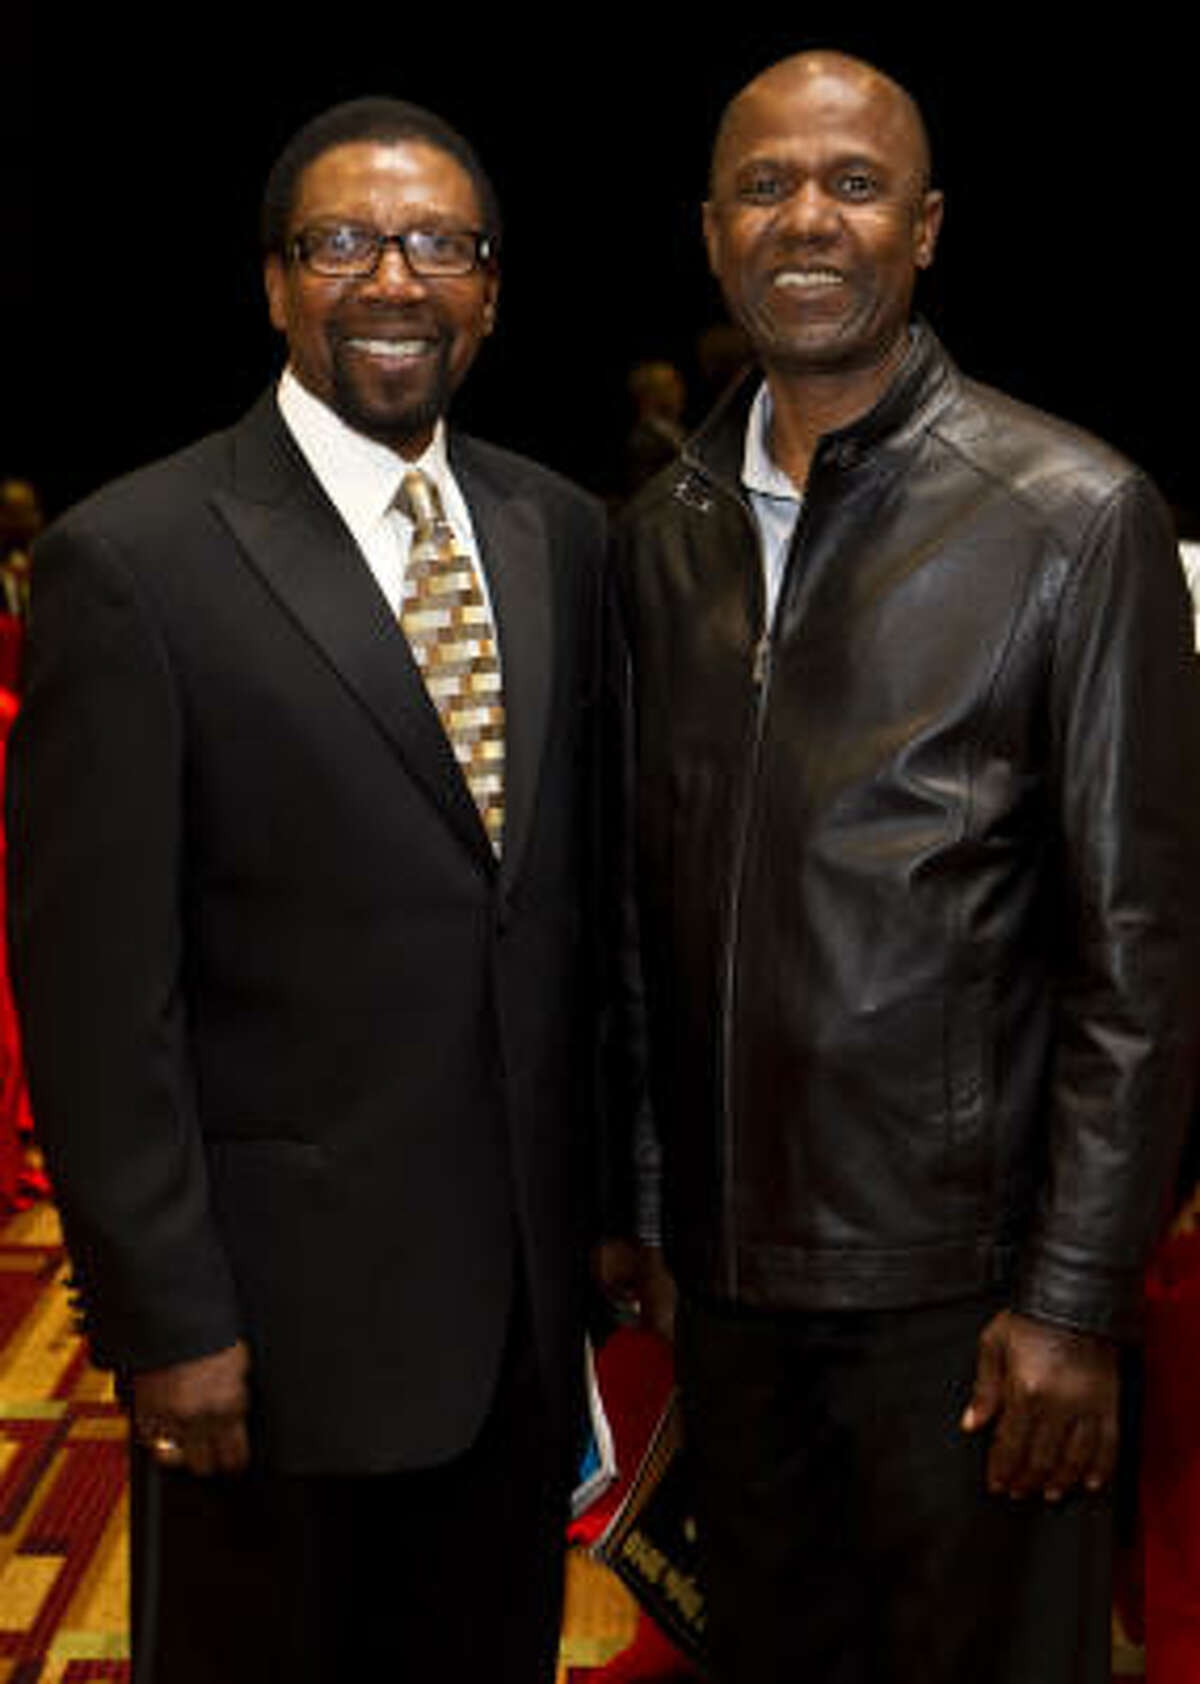 Dr. J. Thomas Smith and Godfrey Uduma